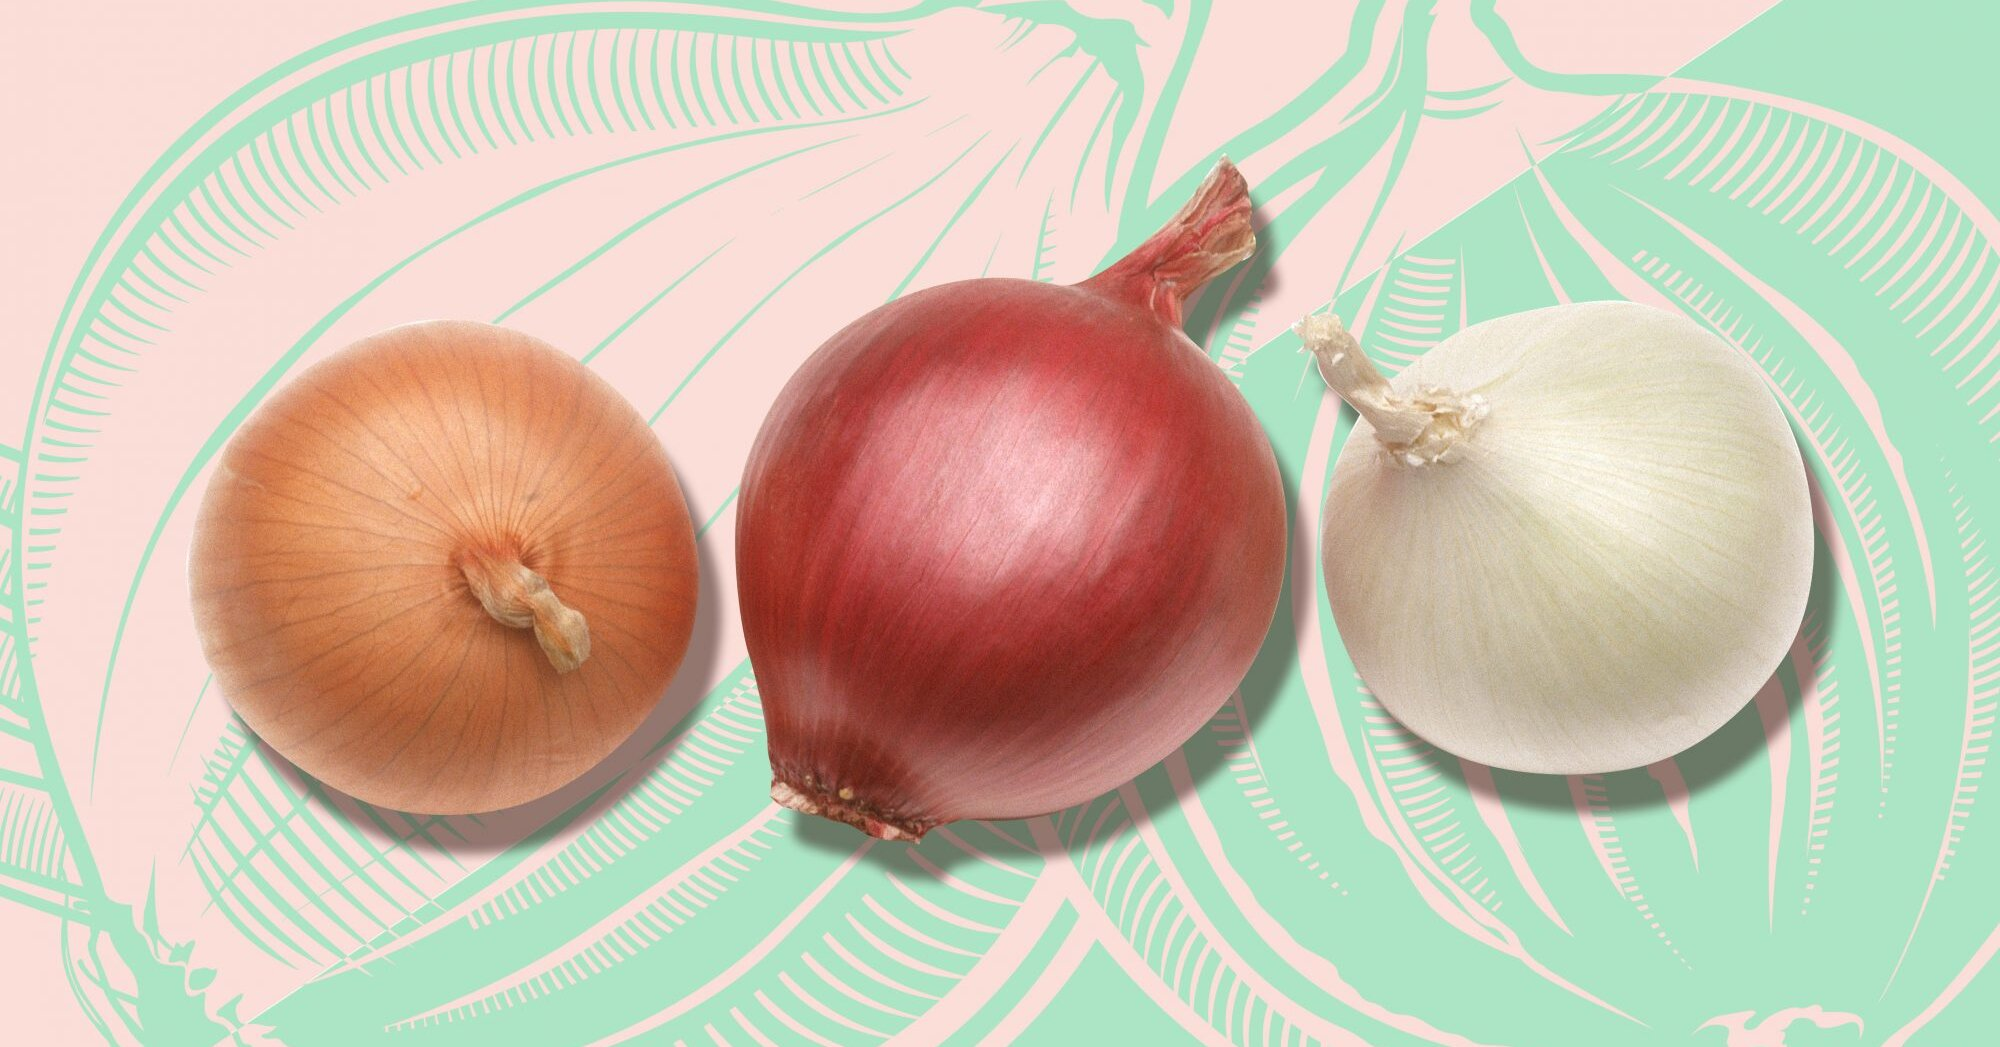 These Are The 10 Types of Onions Worthy of Your Tears